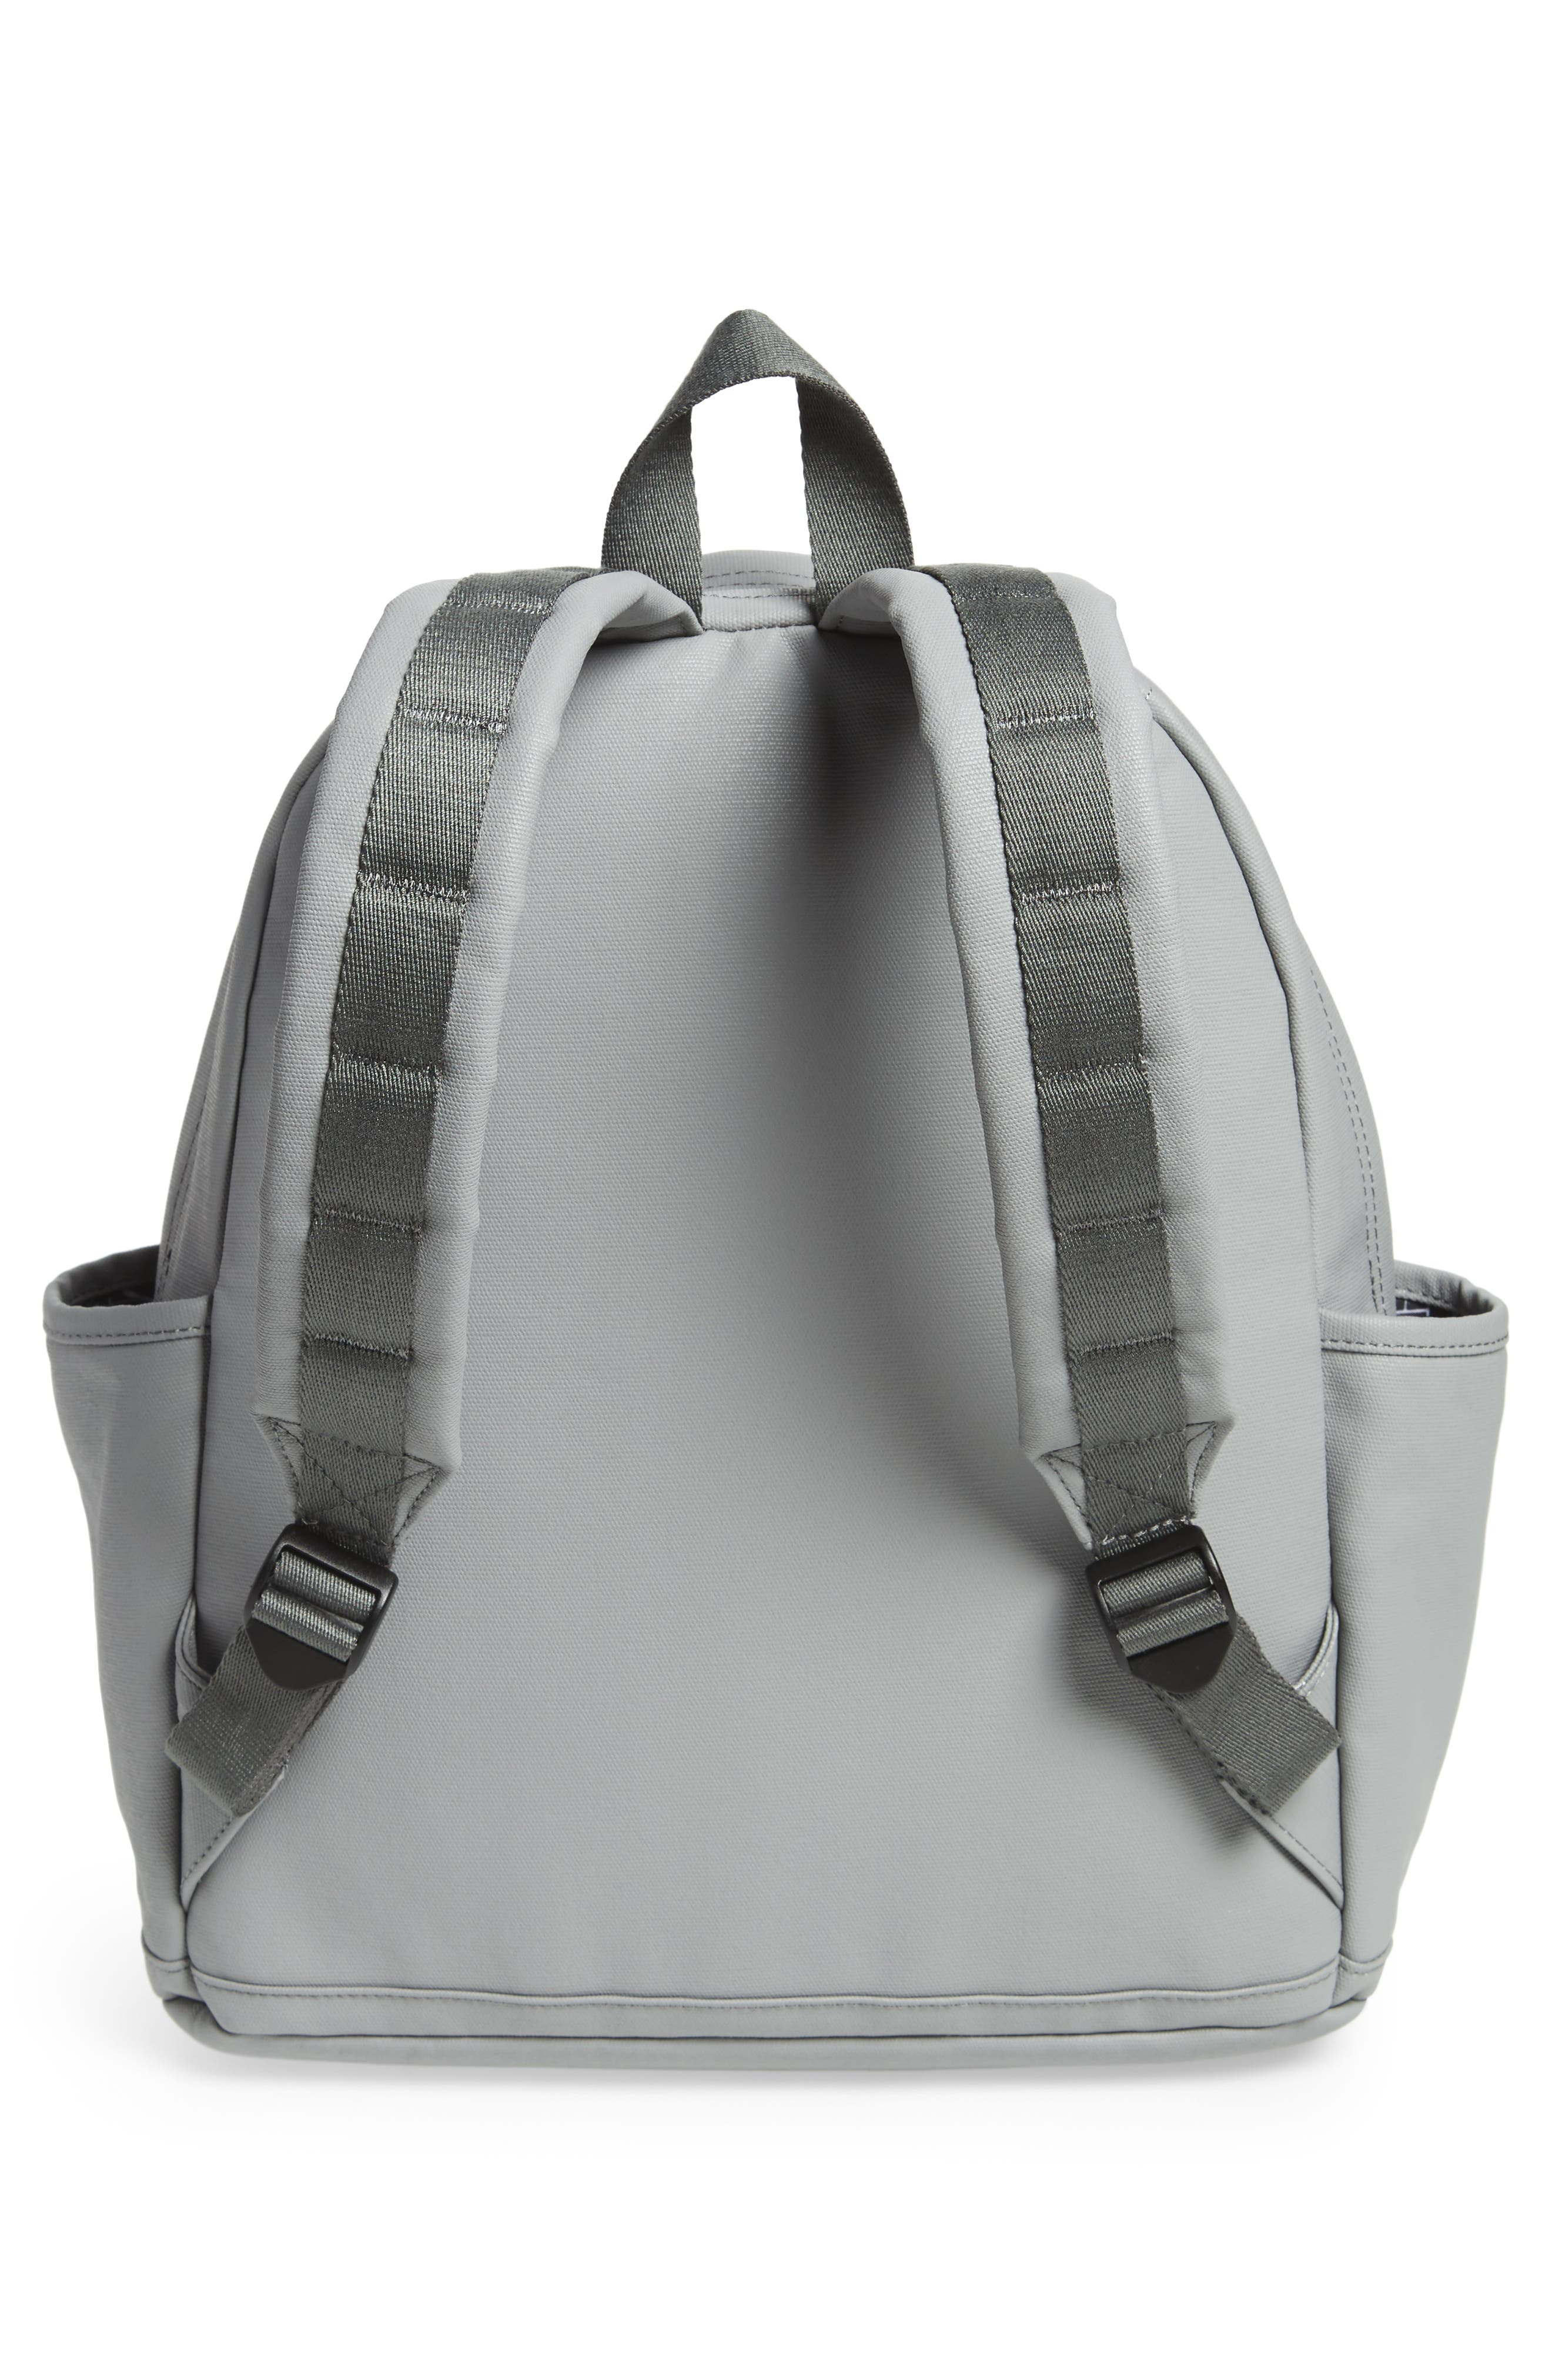 Greenpoint Kent Backpack,                             Alternate thumbnail 3, color,                             Frost Grey